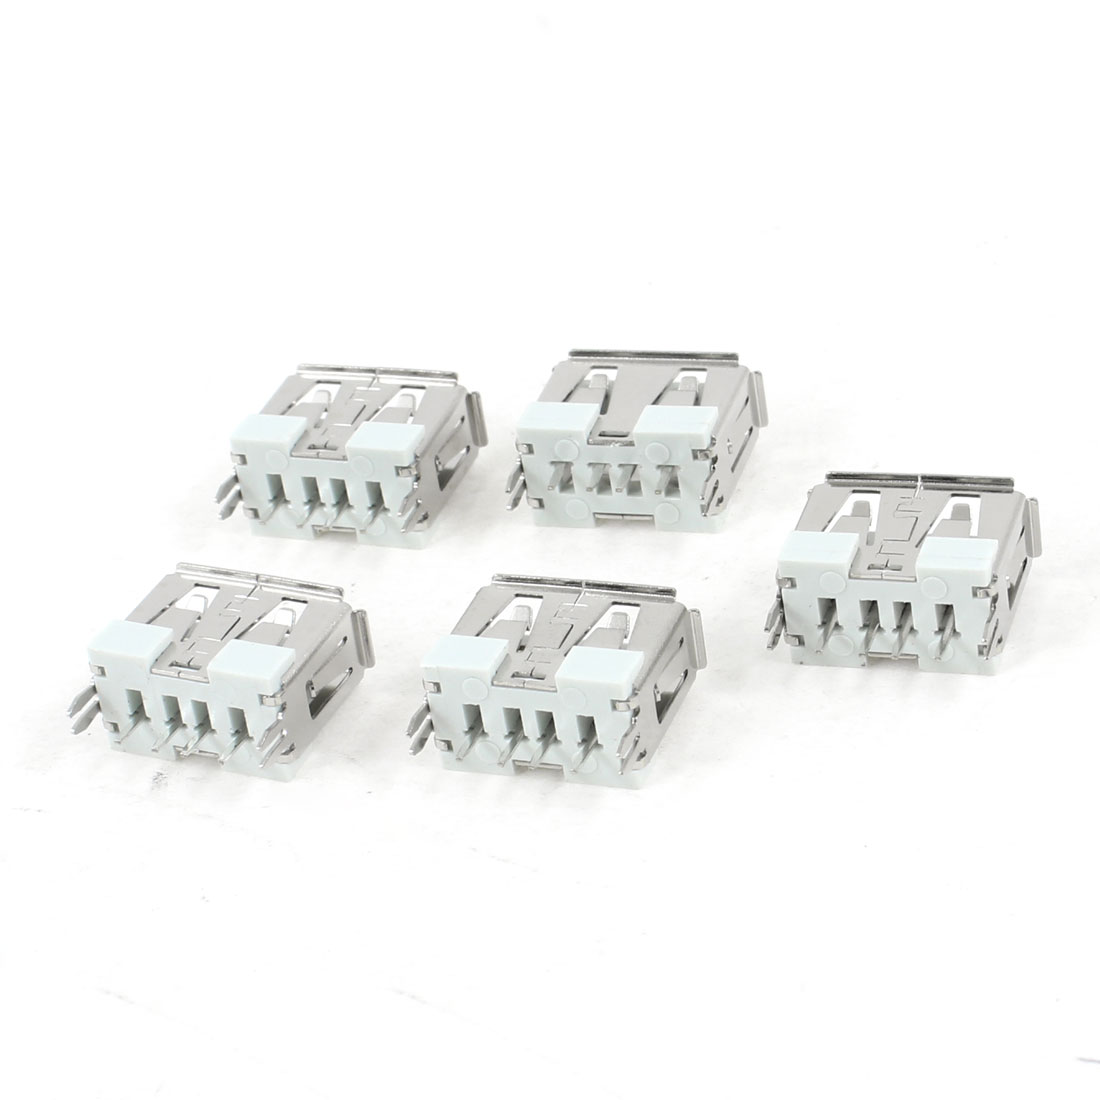 5 Pcs Single USB 2.0 Type A 180 Degree 4-Pin DIP Female Jack Socket